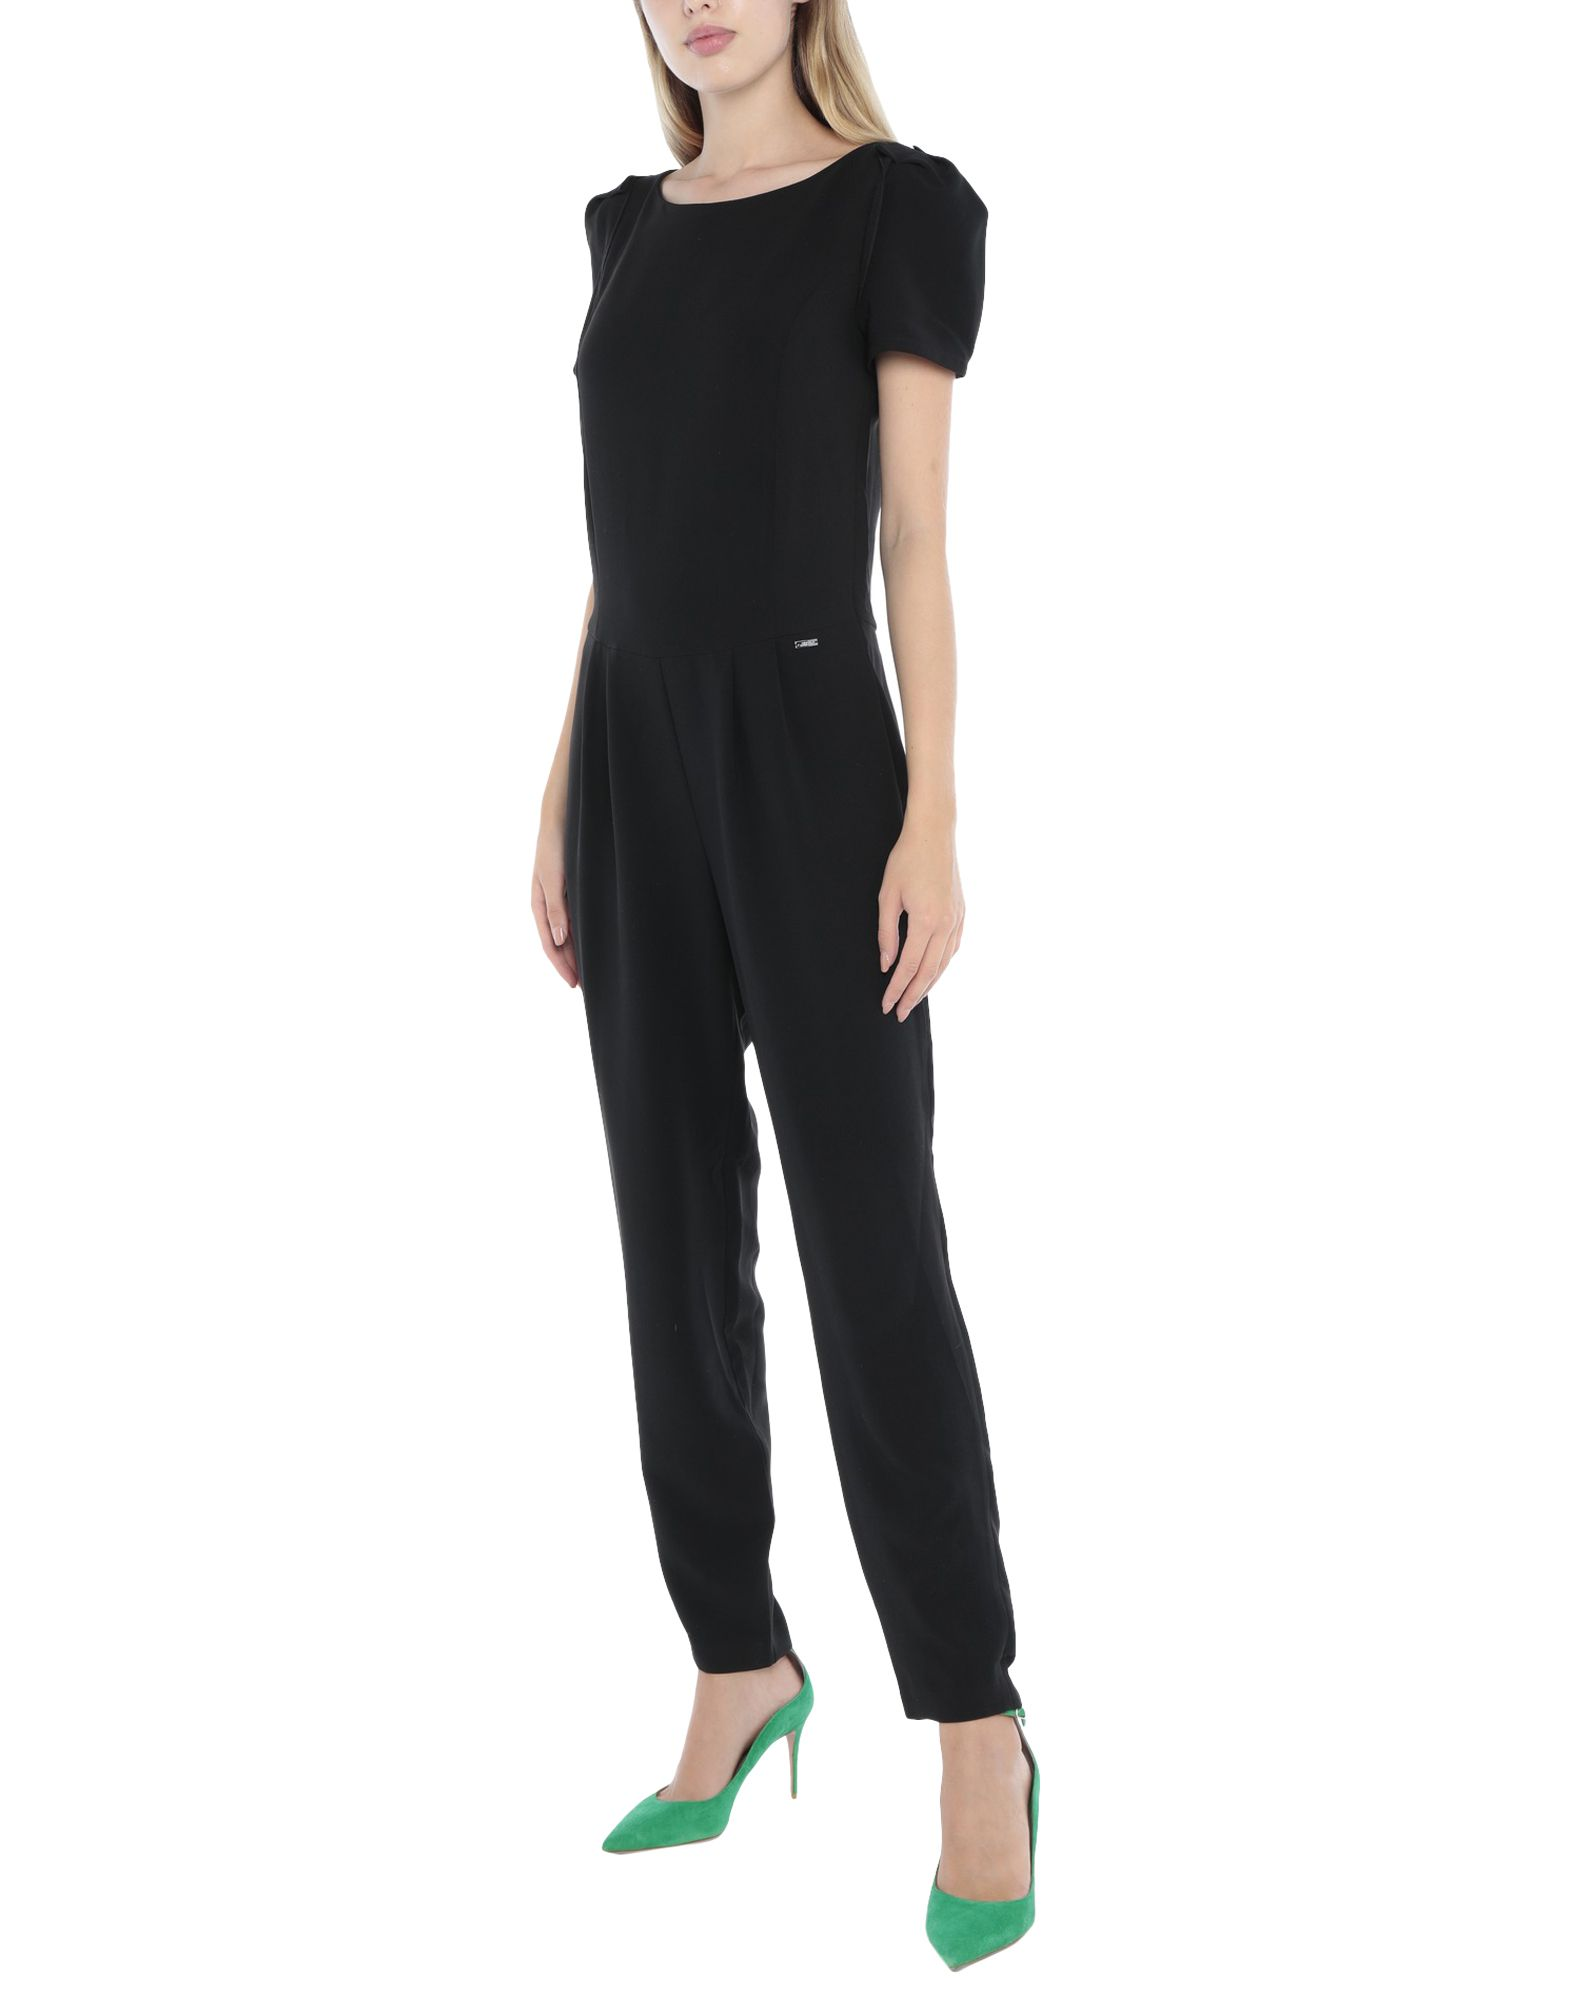 ARMANI EXCHANGE Jumpsuits - Item 54169135